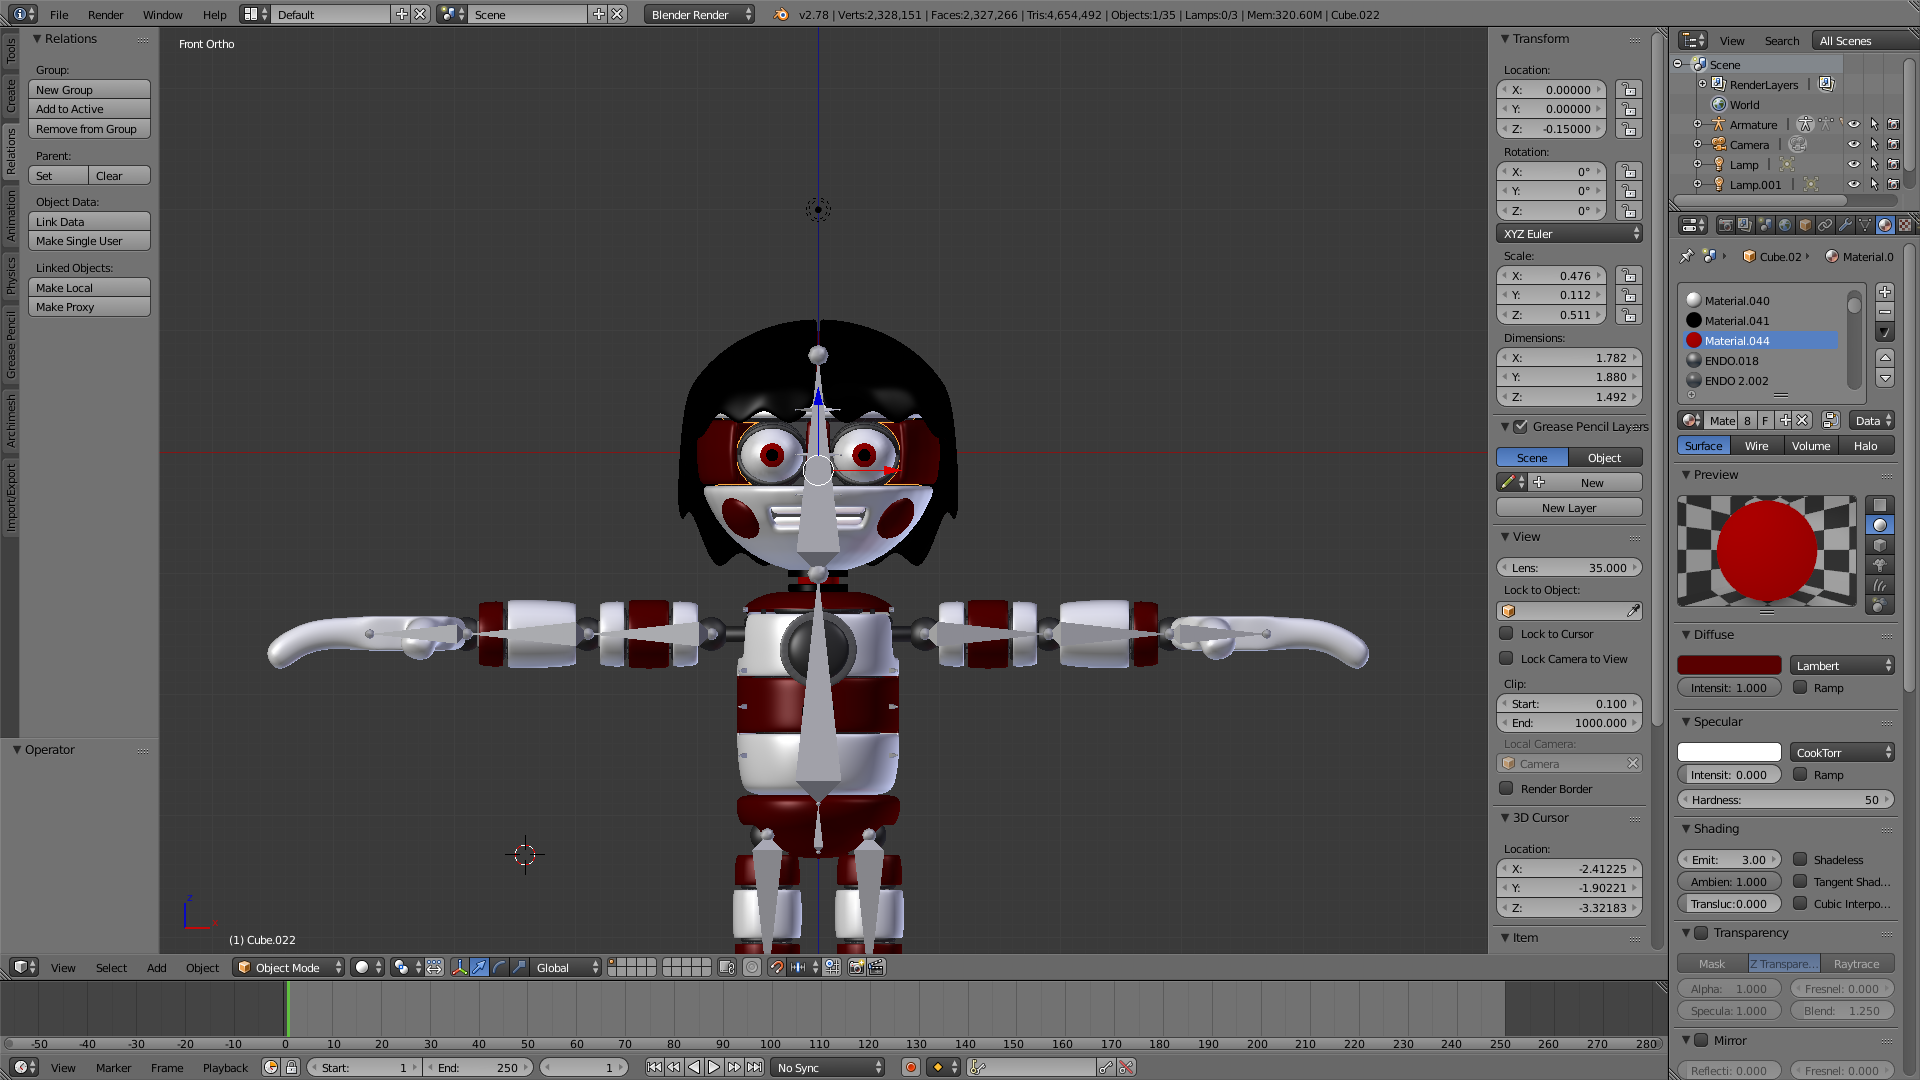 Horror multiplayer retro survival fangame fnaf view all - High Poly Animatronic Model For Some Reason I Tried To Export The Model To A 3ds File But It Comes Up With An Error